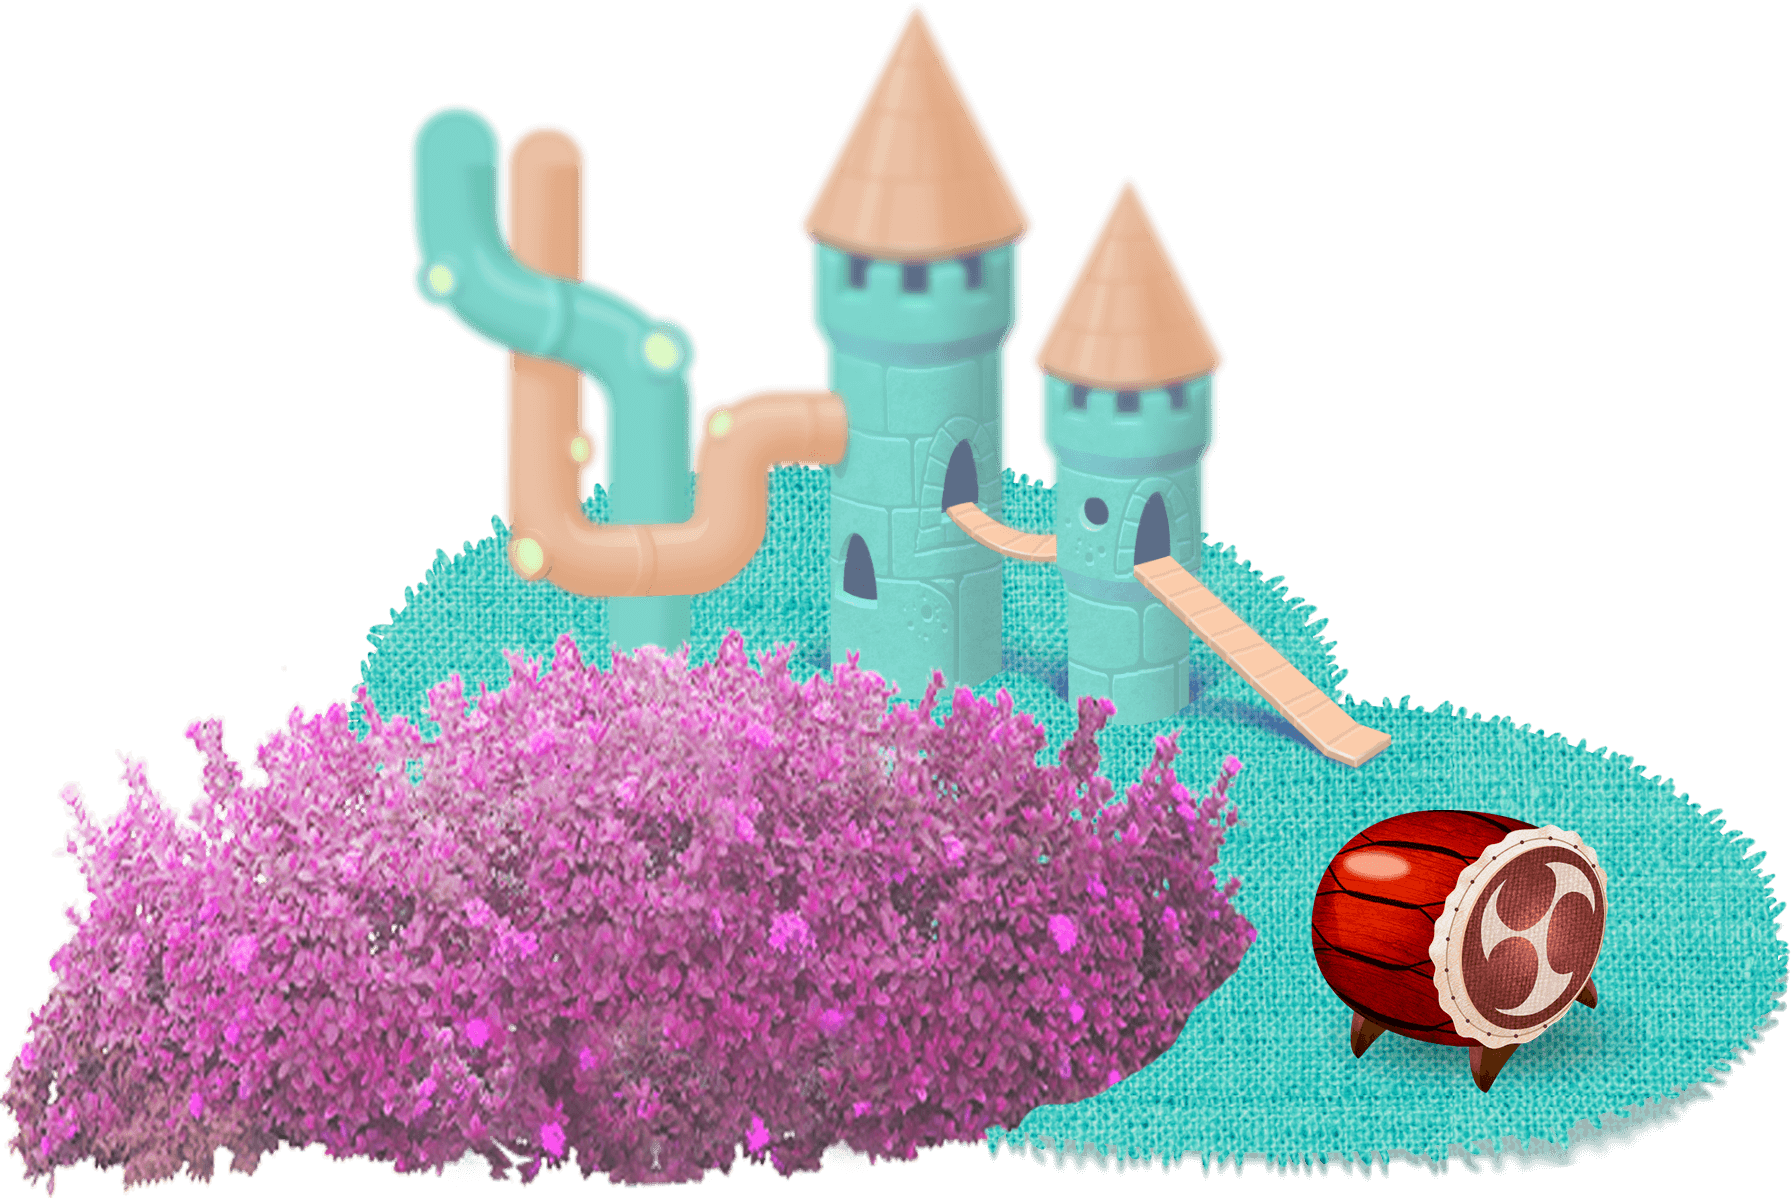 Towers on the grass, bushes and barrel